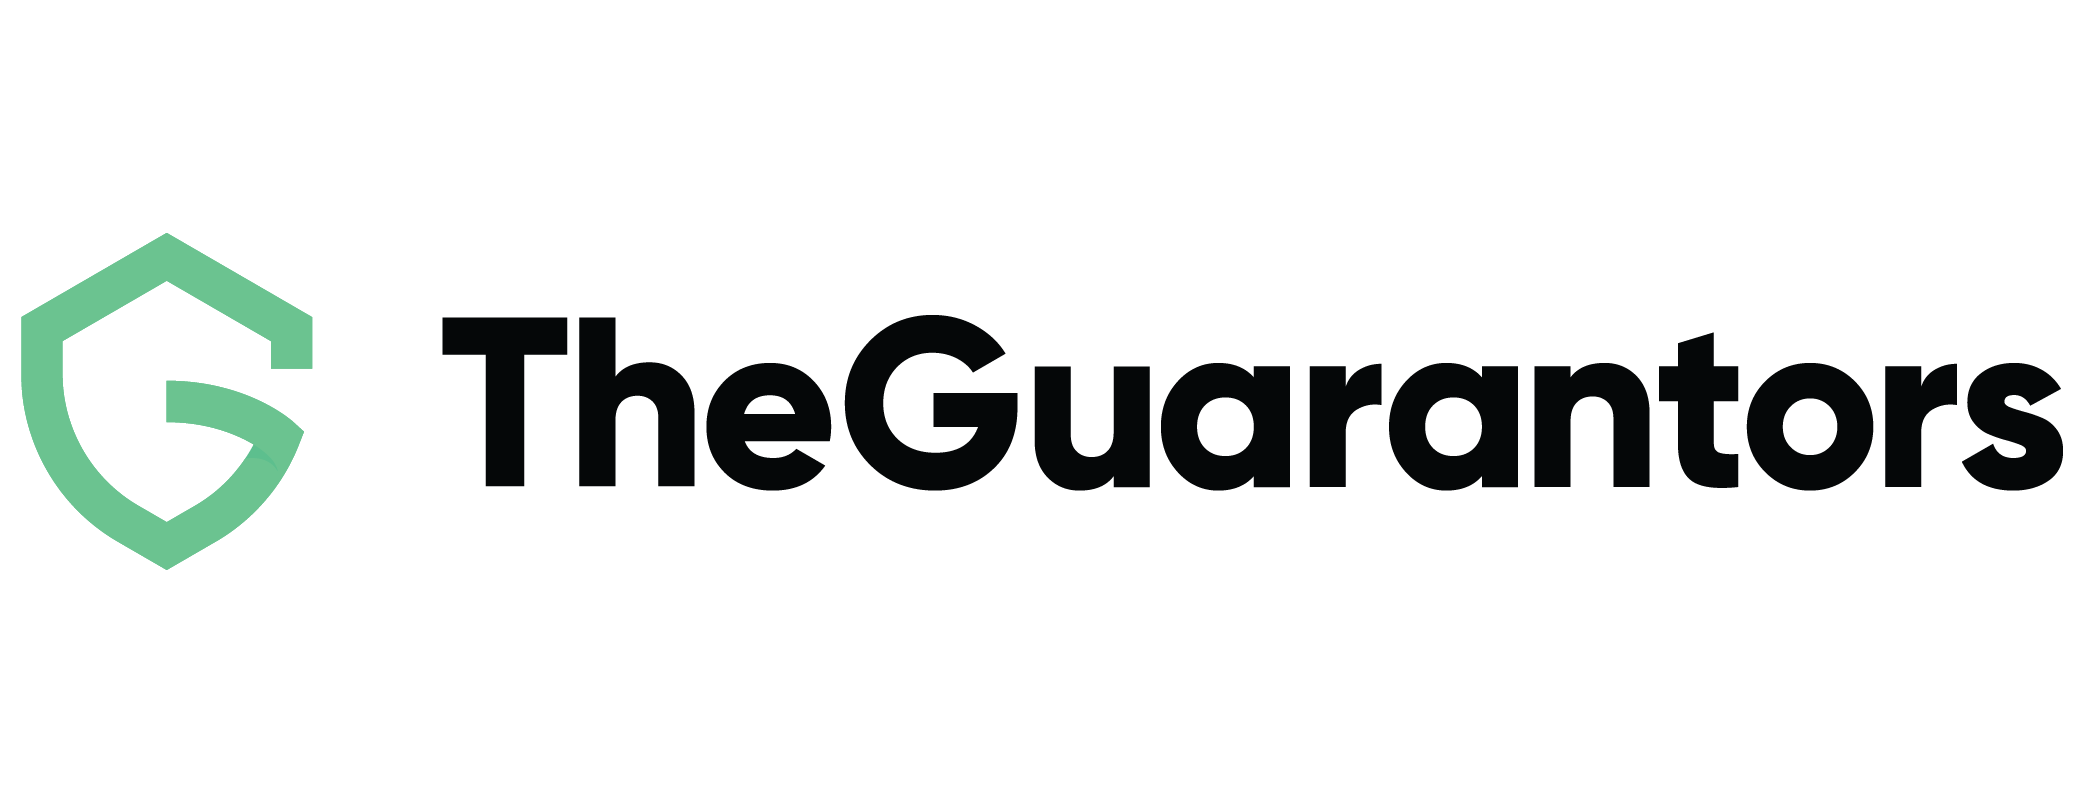 The Guarantors logo